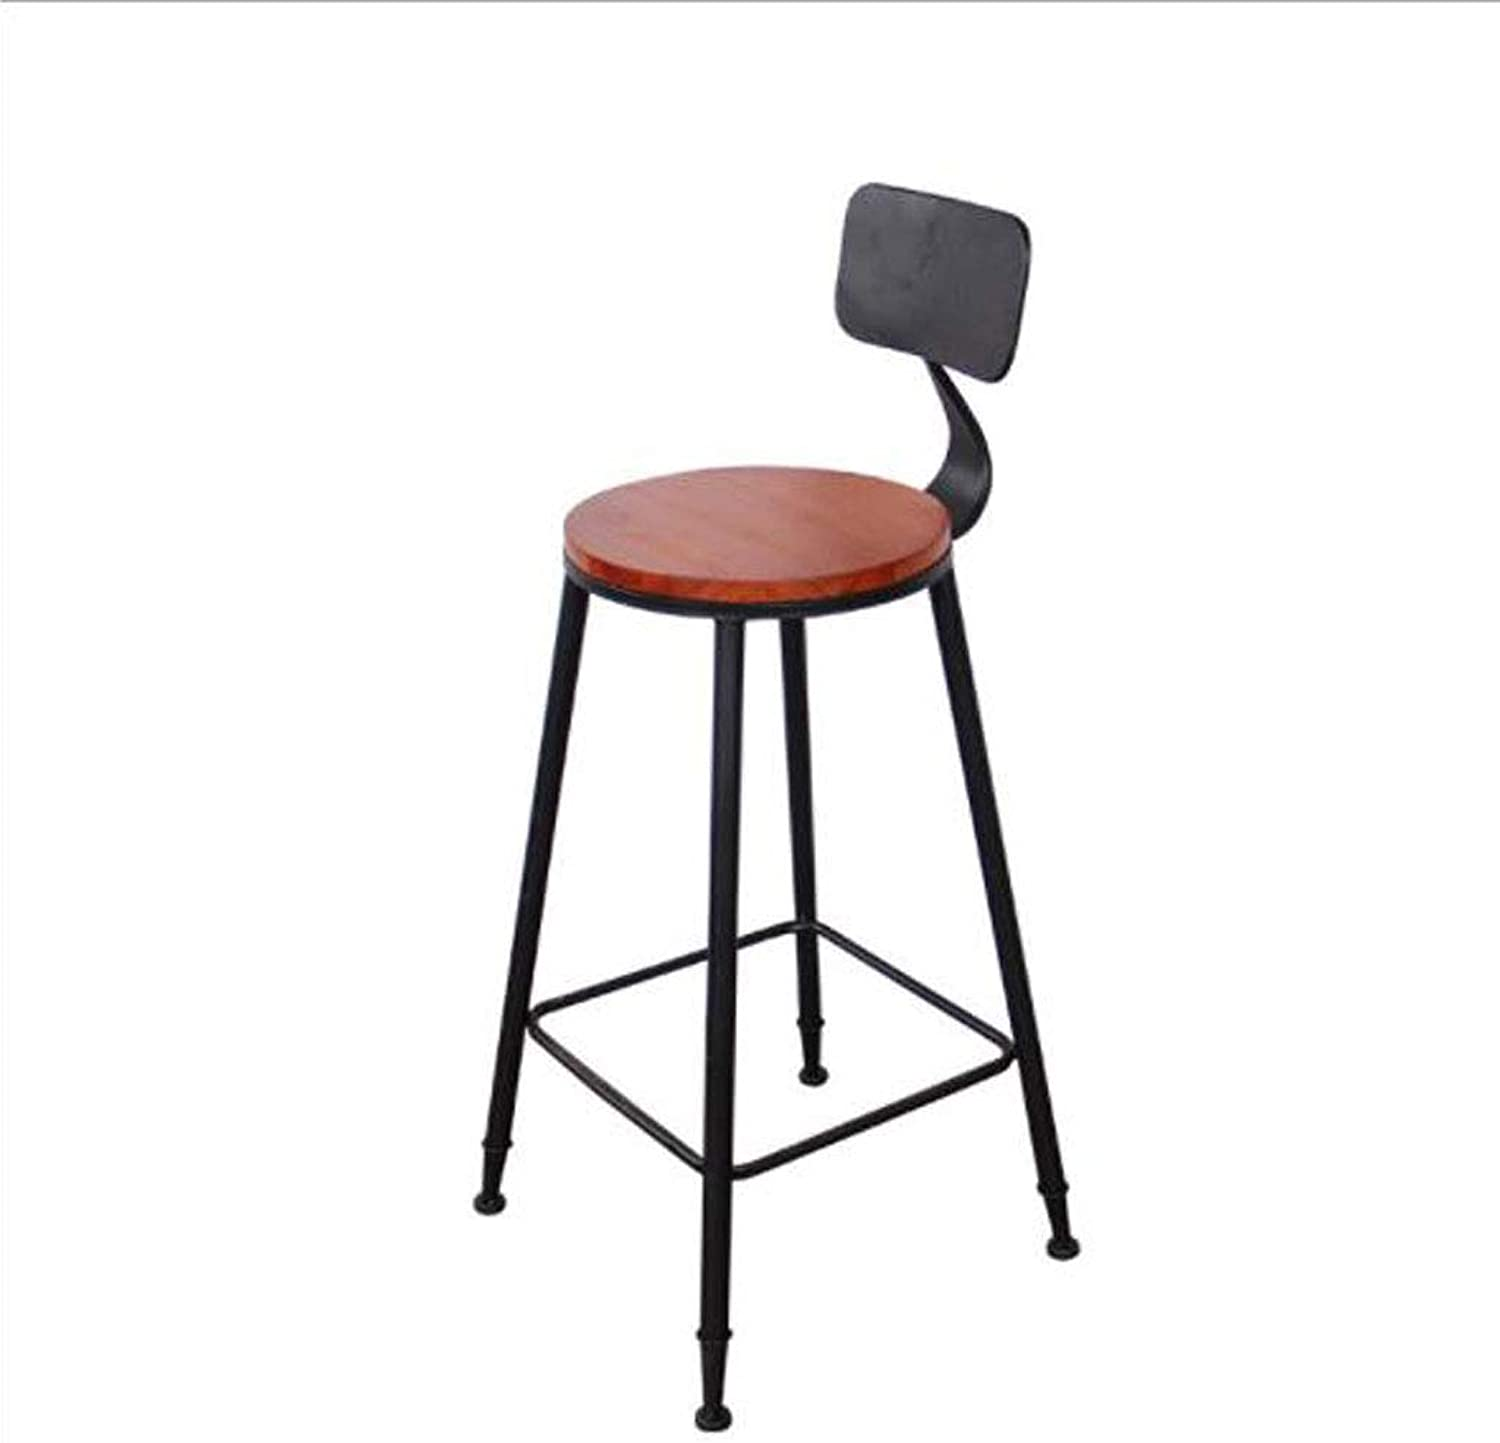 Bar stools Metal Bar Stool Leisure Bar Chair Simple Industrial Wind Wood Bar Chair Round Backrest Height 100cm Height Chair